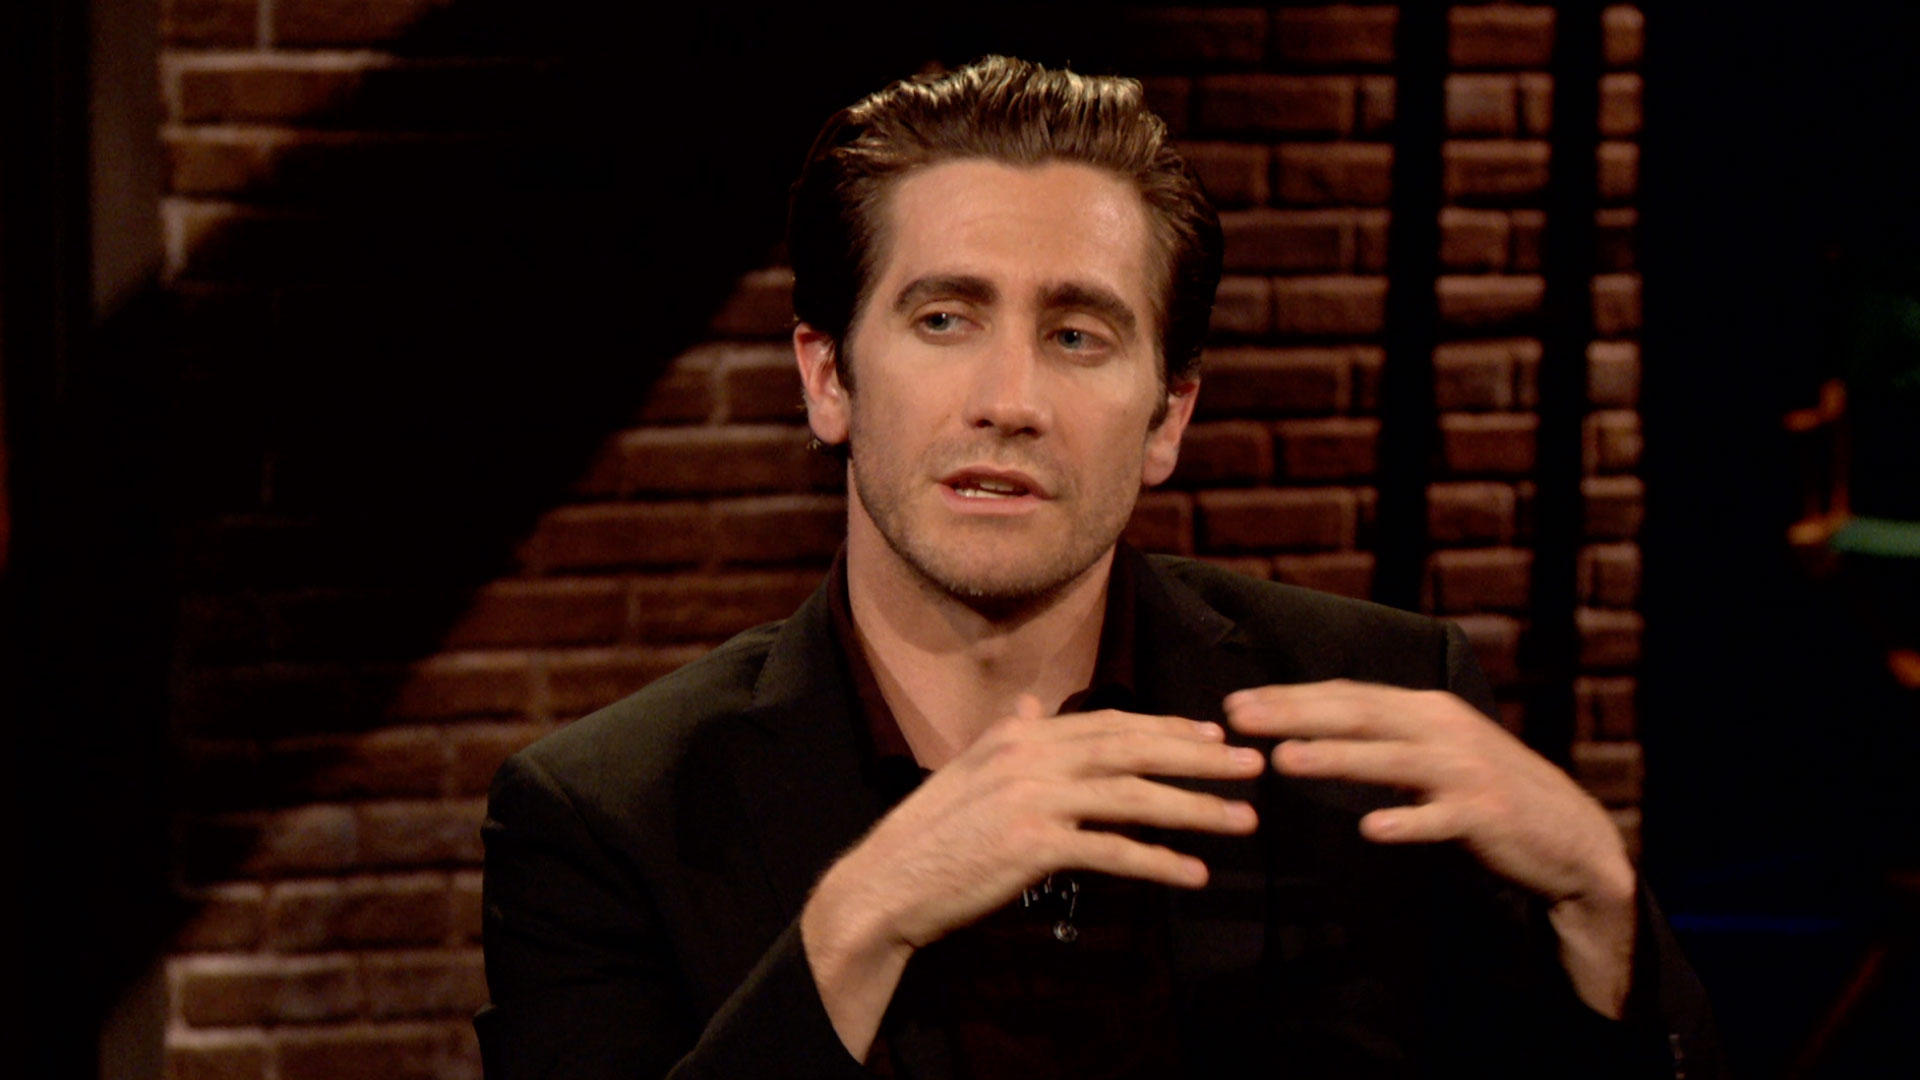 Jake Gyllenhaal - Working with Gwyneth Paltrow